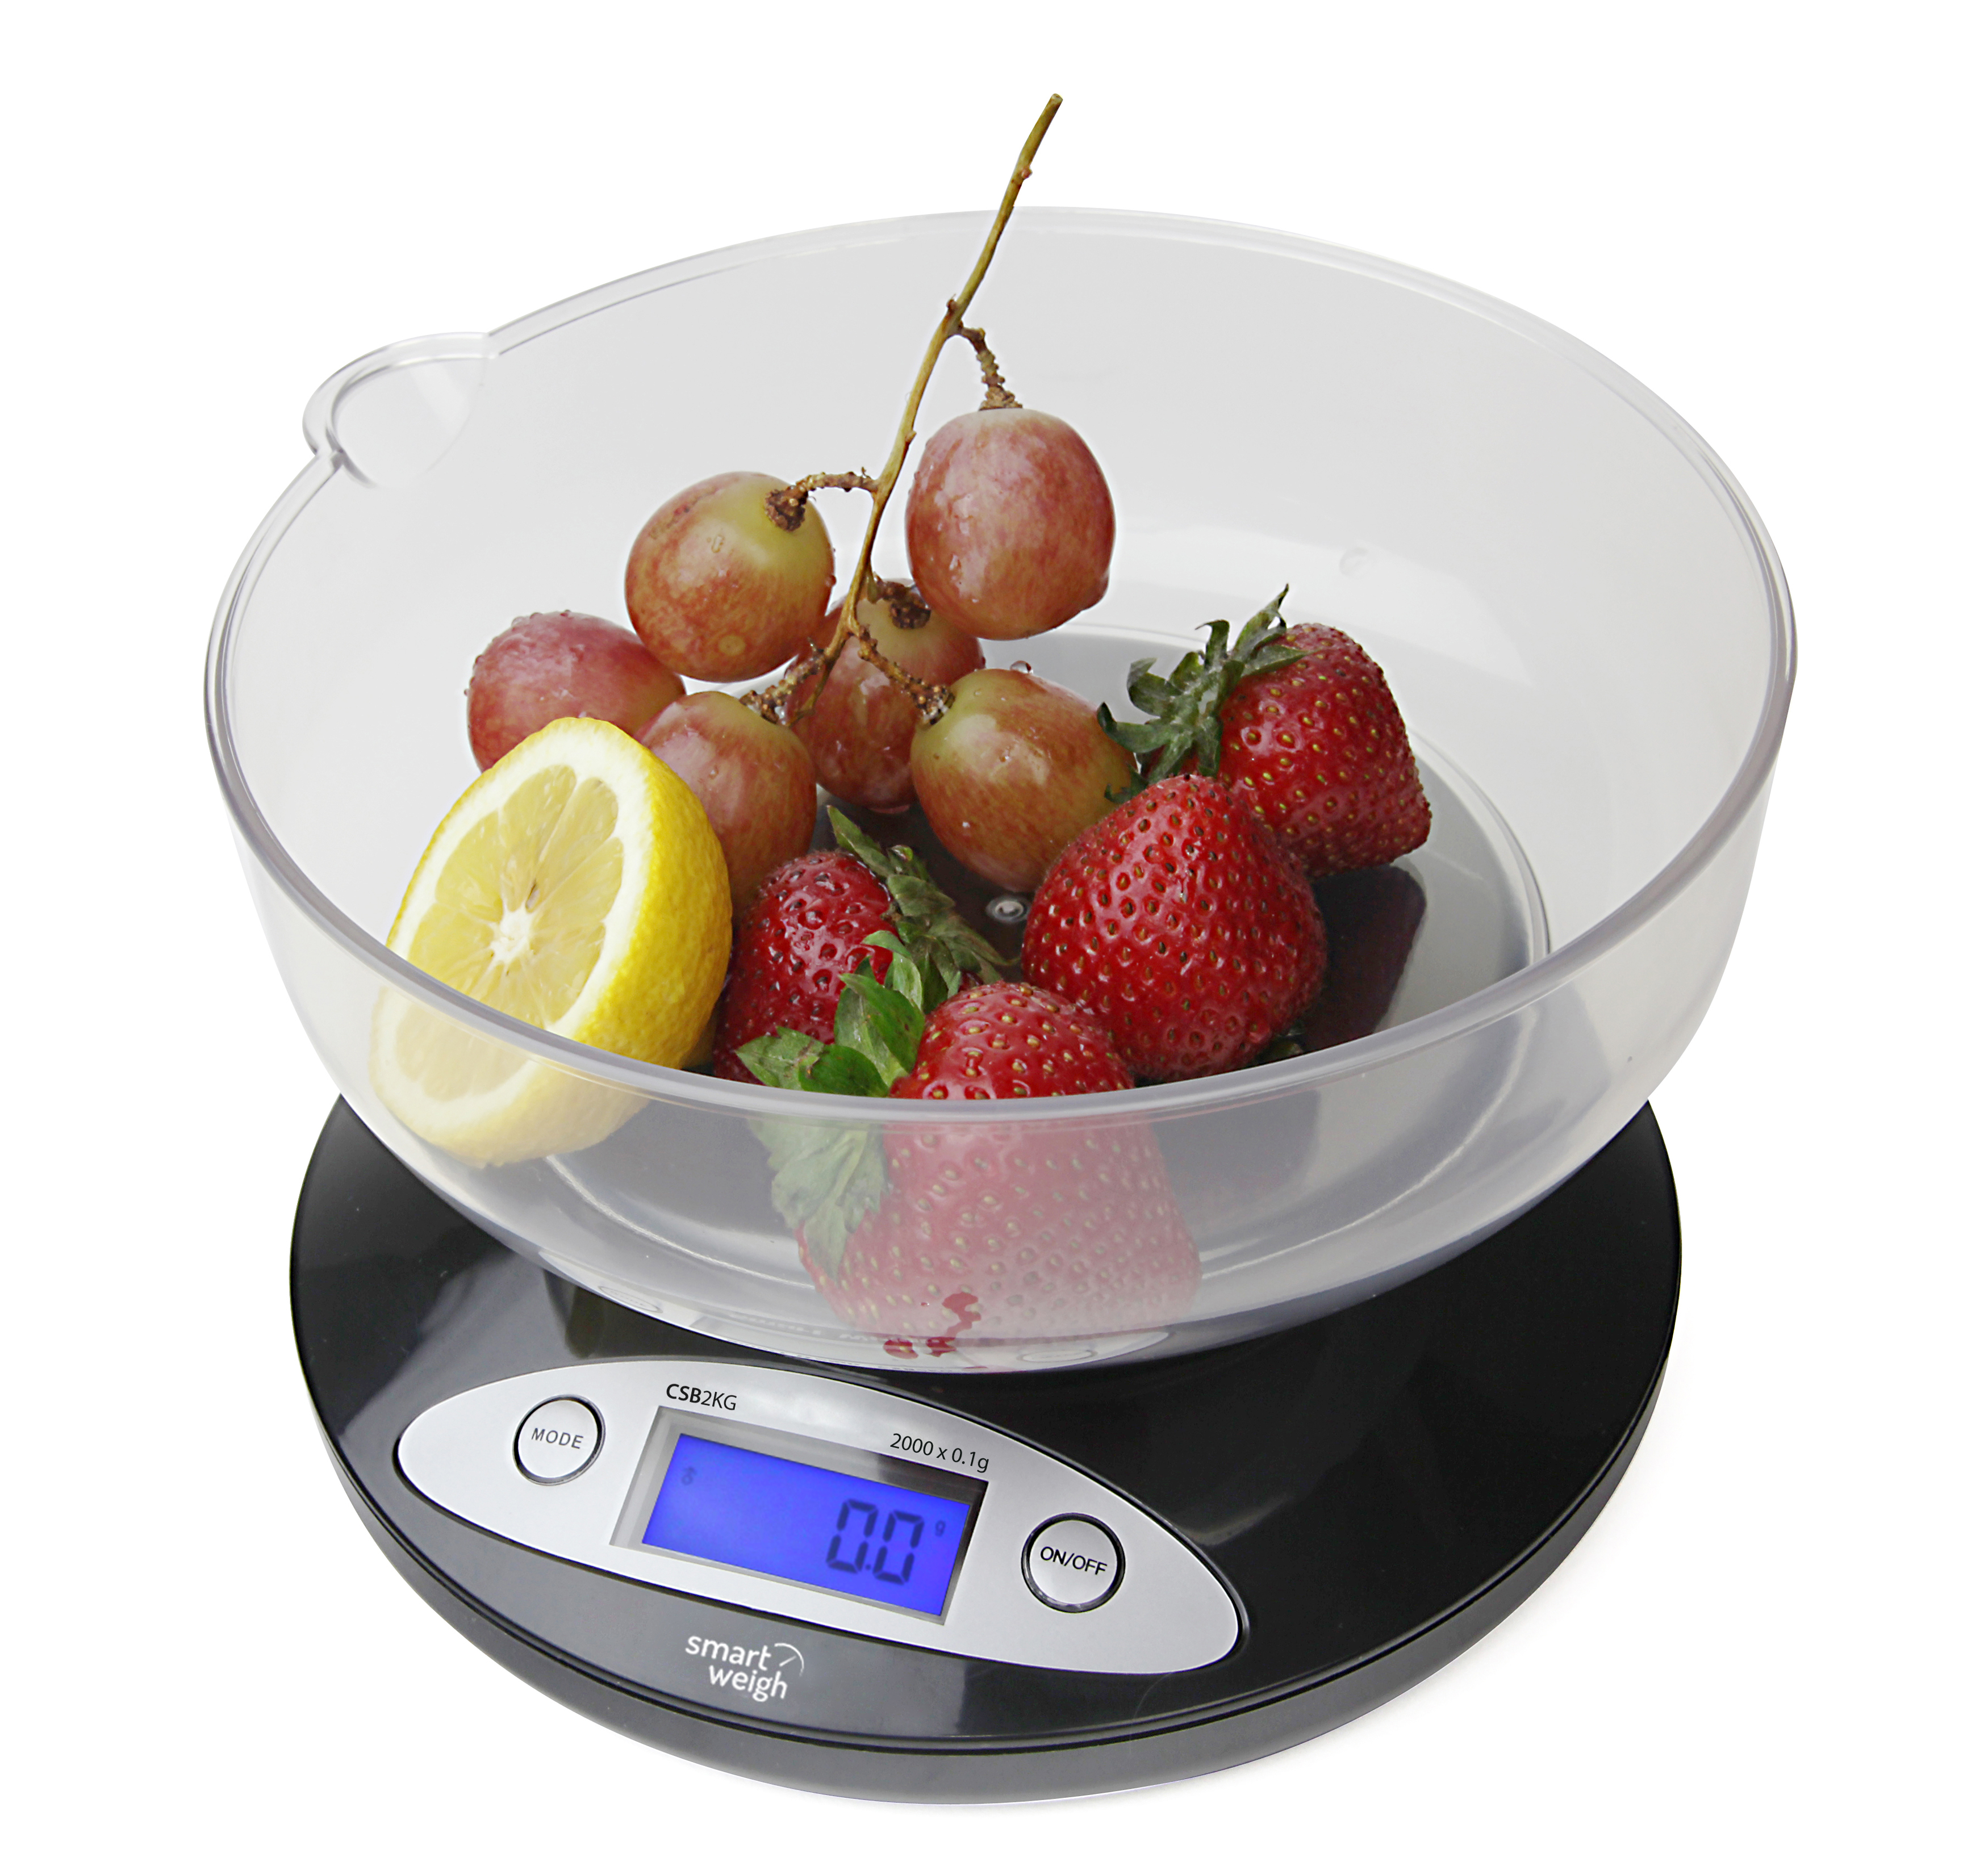 Smart Weigh Kitchen Digital Food Scale for Bake + Diet w/ Bowl 4.4lbs x 0.01oz